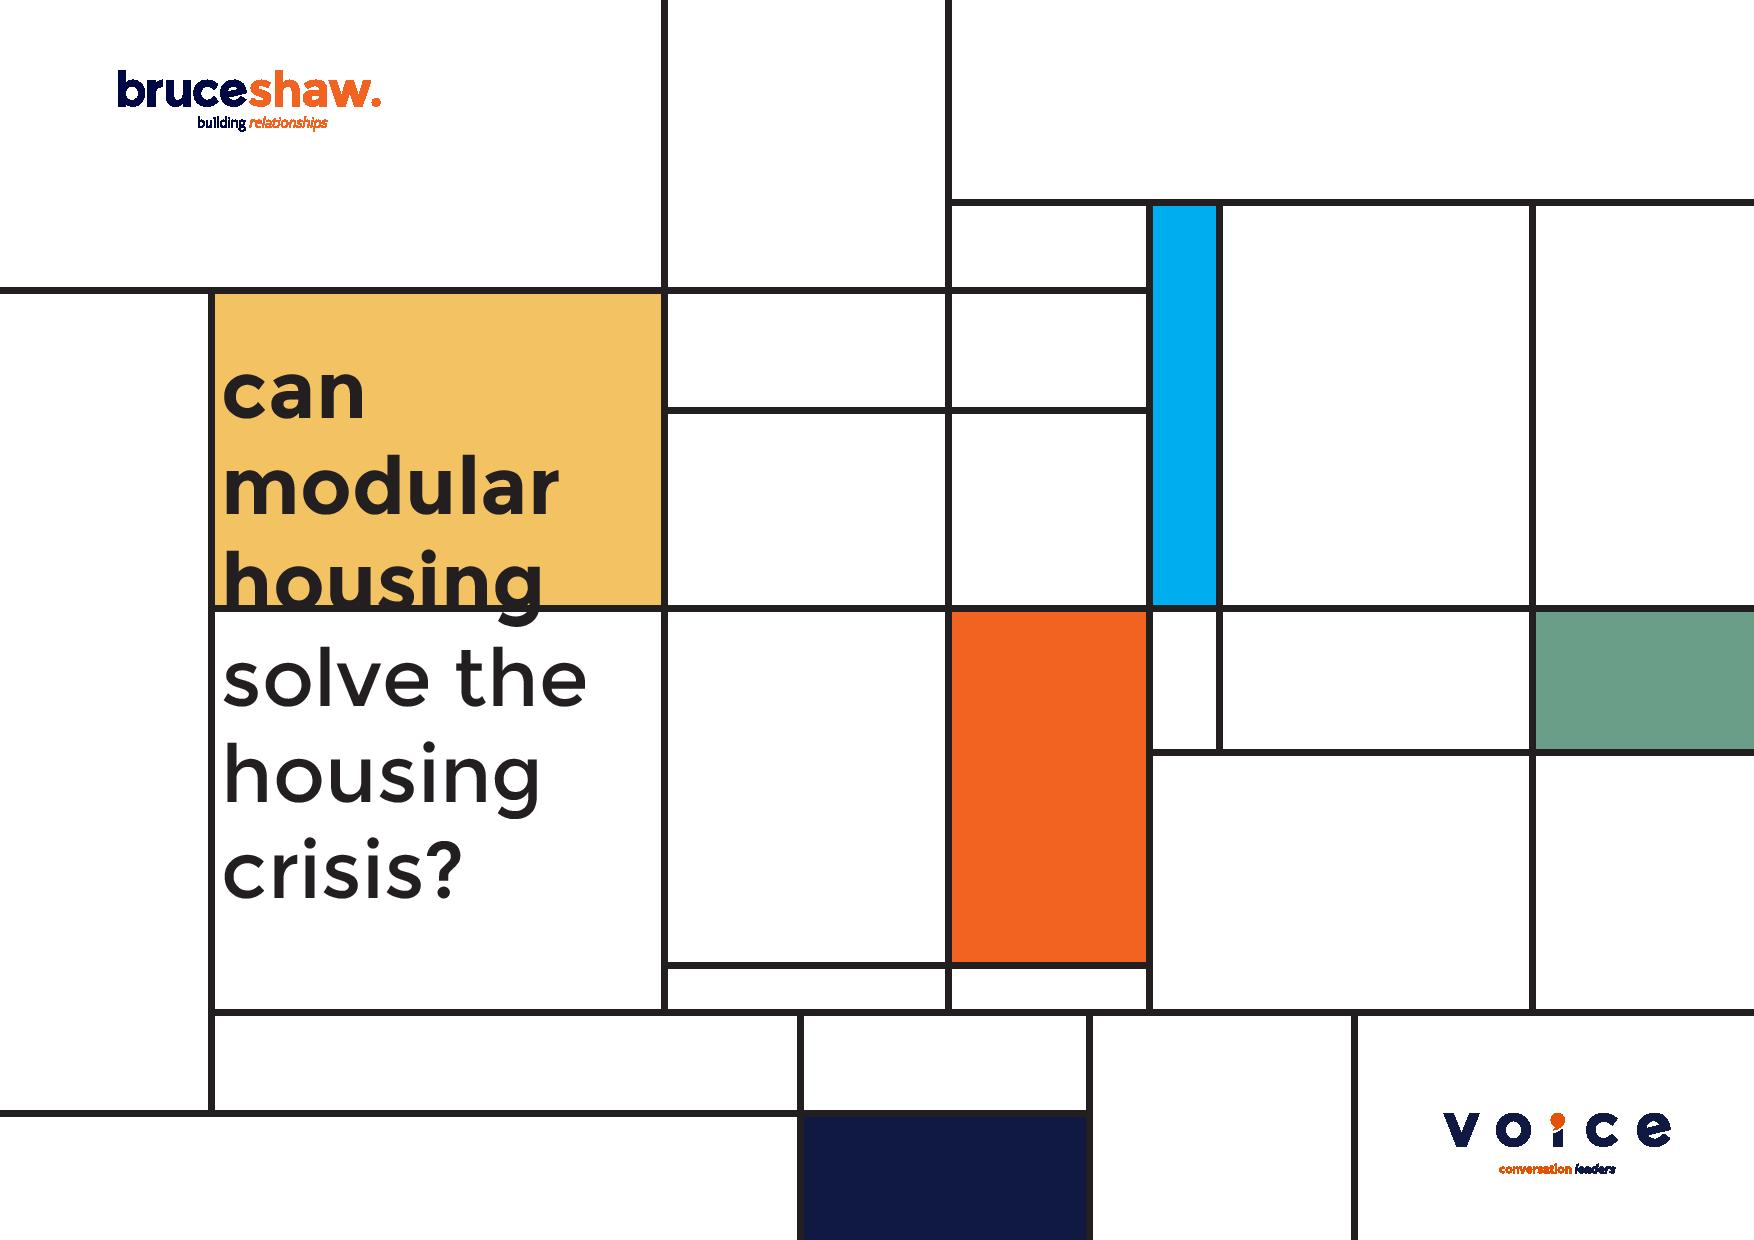 Bruceshaw explores the residential sector through modular housing